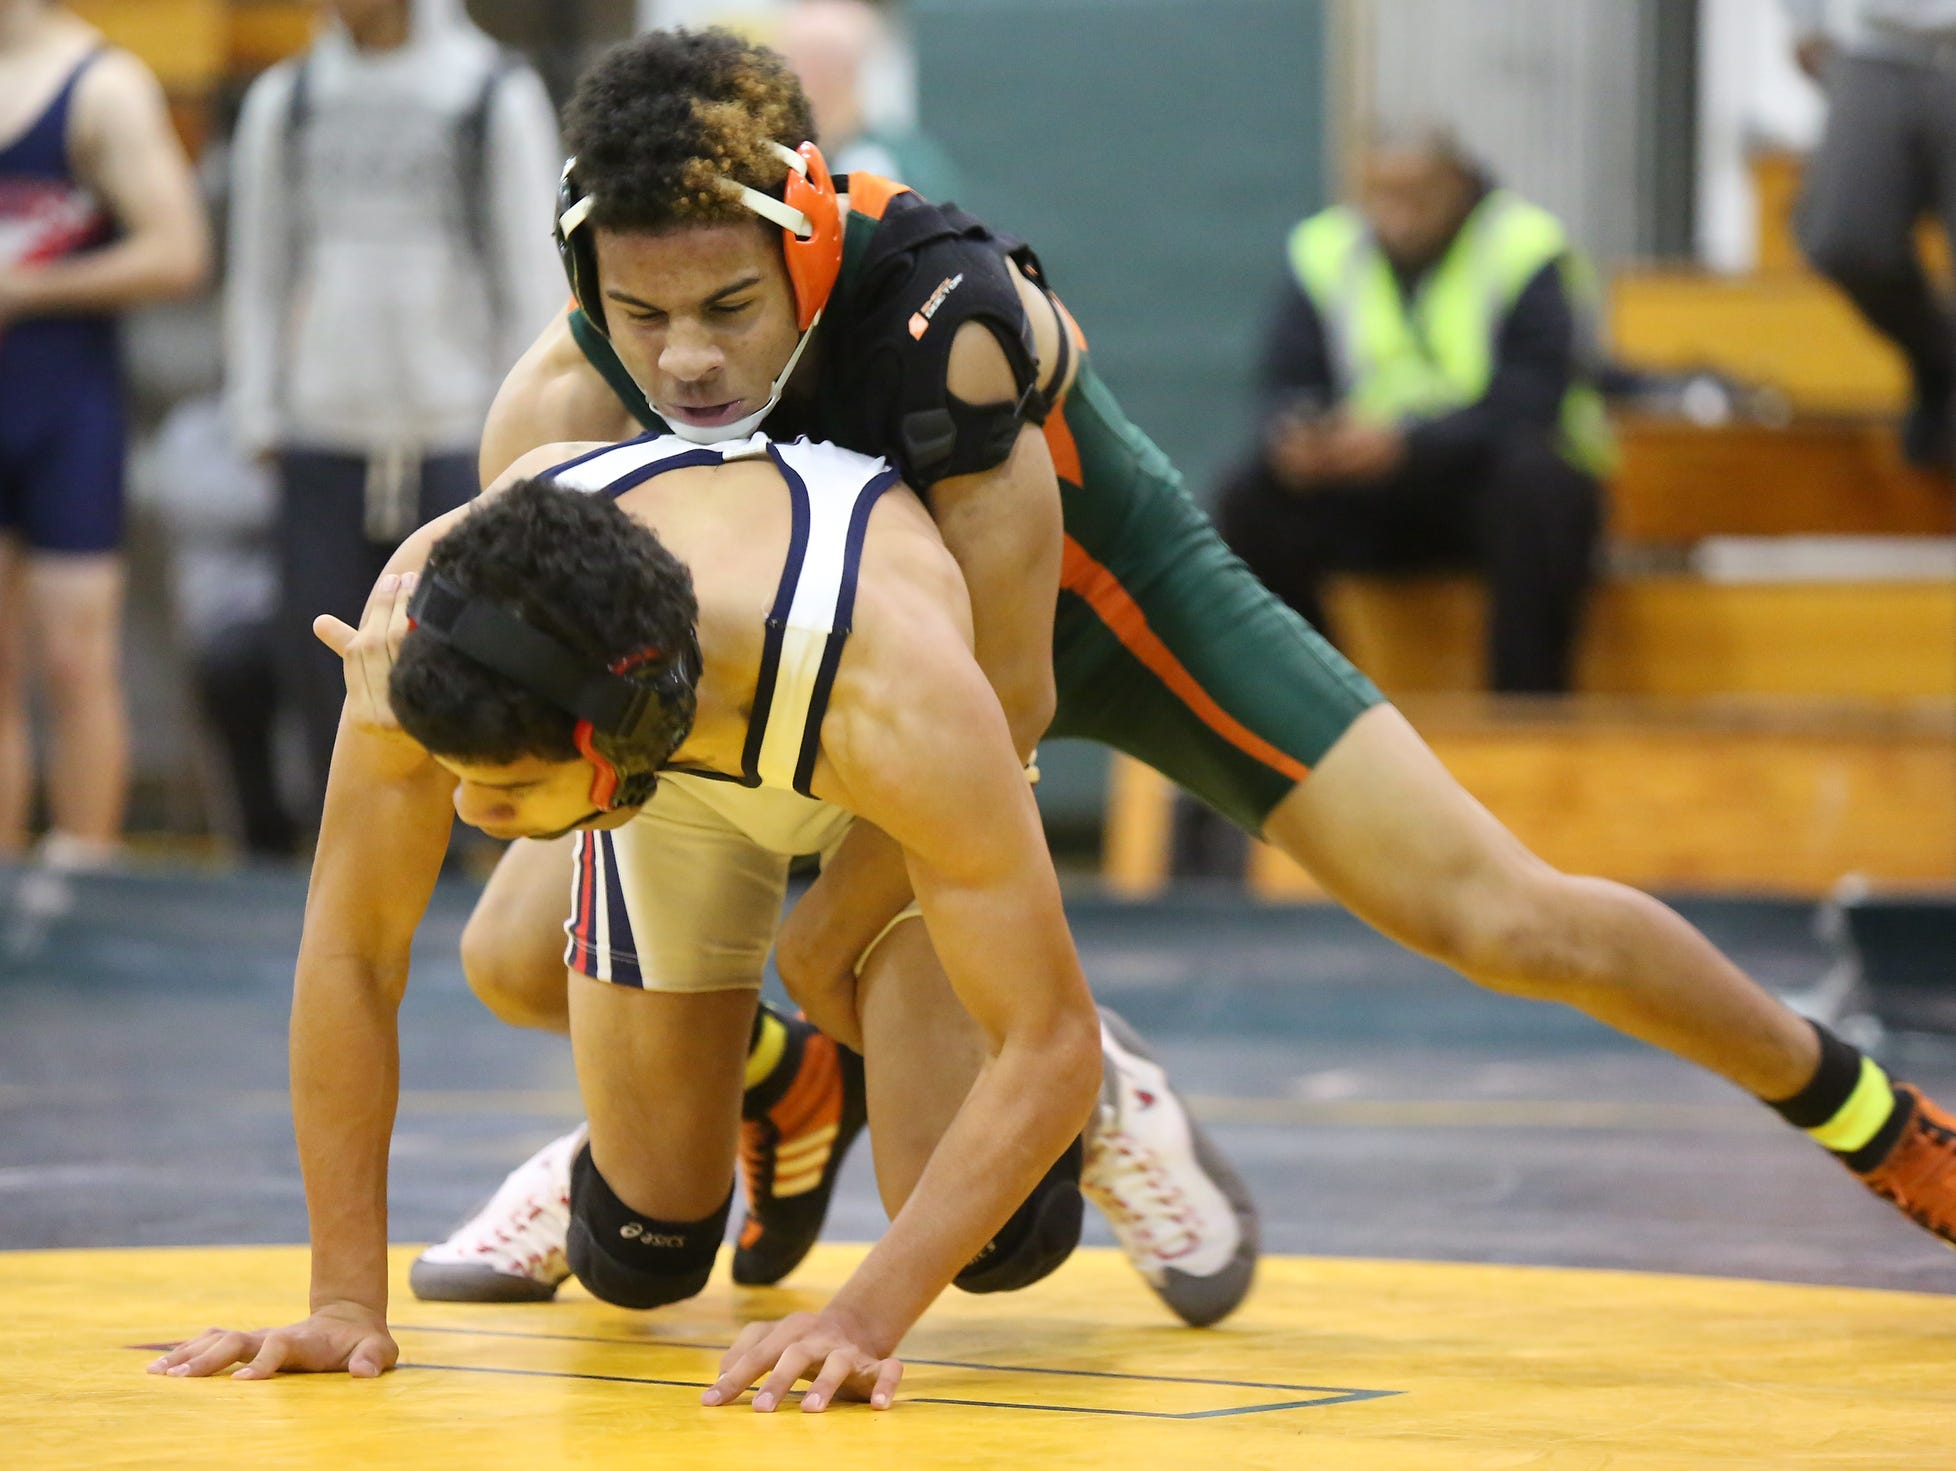 East Ramapo's Romello Bradley, top, wrestles Yonkers' Fredy Guevara in a 145-pound match during a quad meet in the Section 1 dual meet championships at Ramapo High School in Spring Valley on Wednesday, Dec. 2, 2015. East Ramapo defeated Yonkers 53-29 and advances to the semifinals.